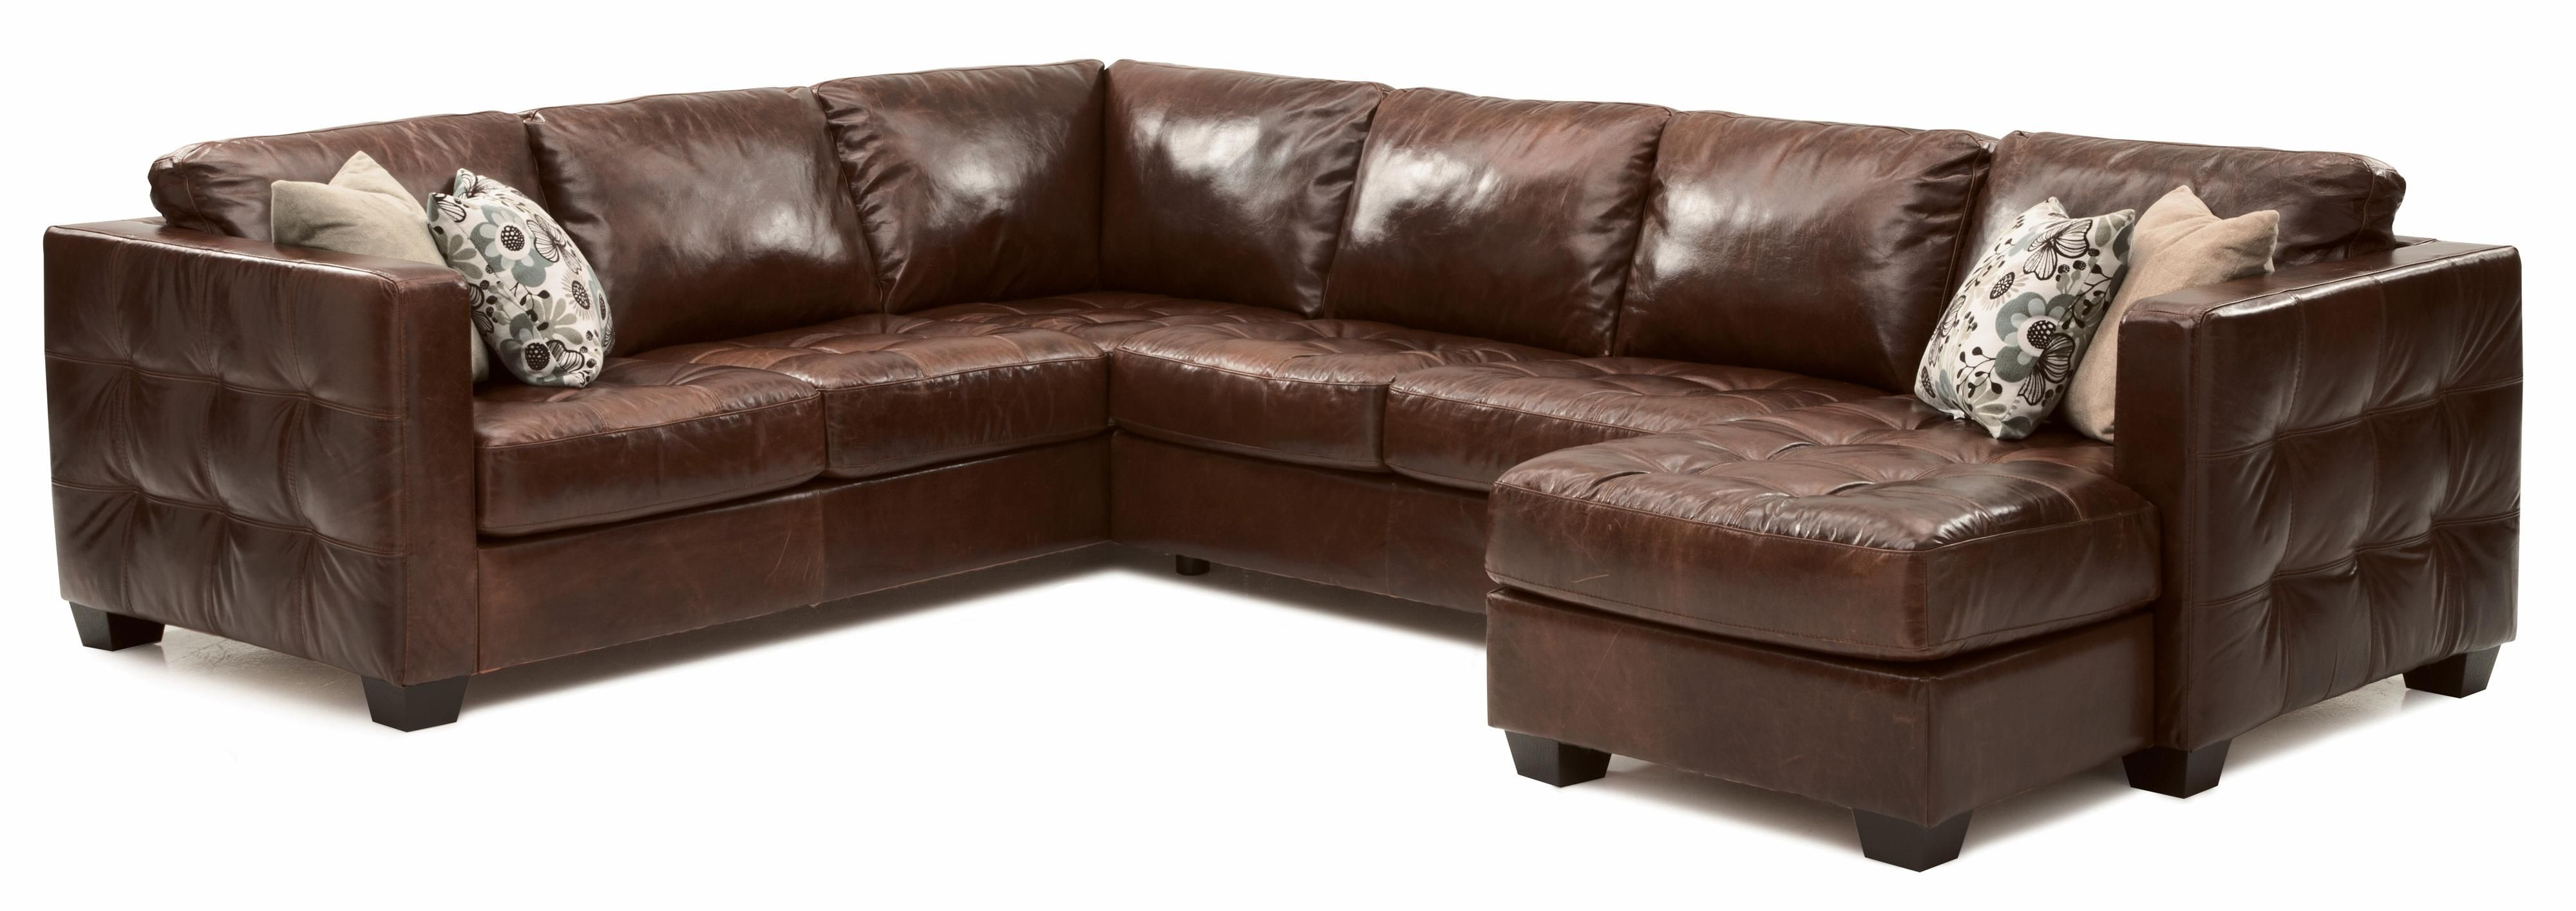 Barrett sofa sectional with decorative track arm by palliser